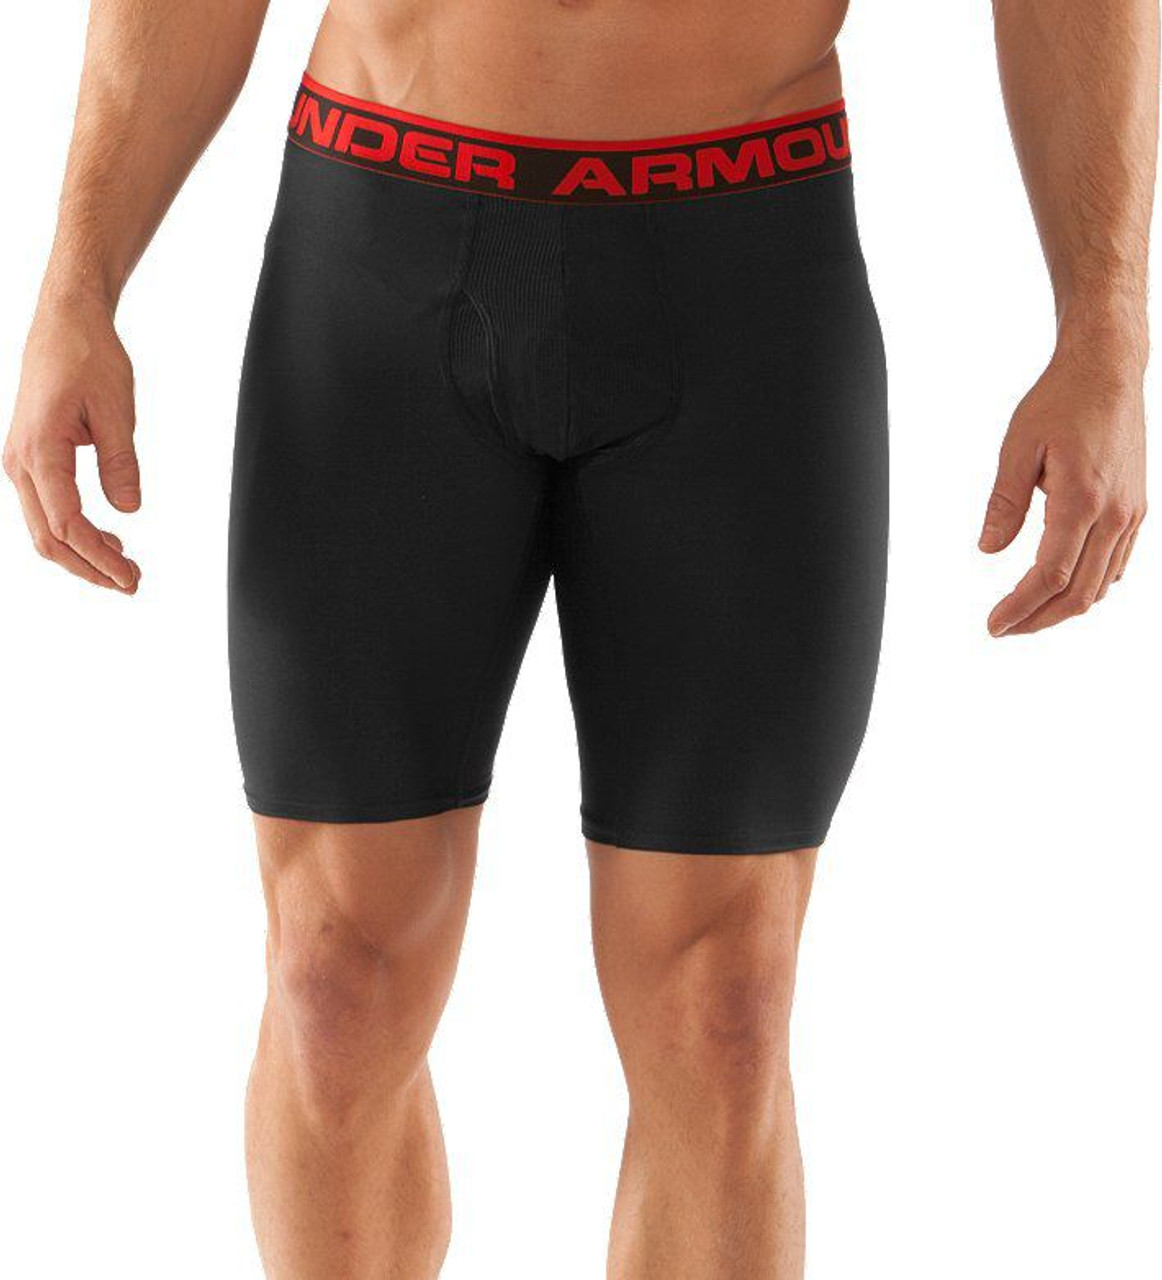 """b8ac6369a9 Under Armour Men's Original Series 9"""" Boxer Jock Boxer Briefs, Black / Red  